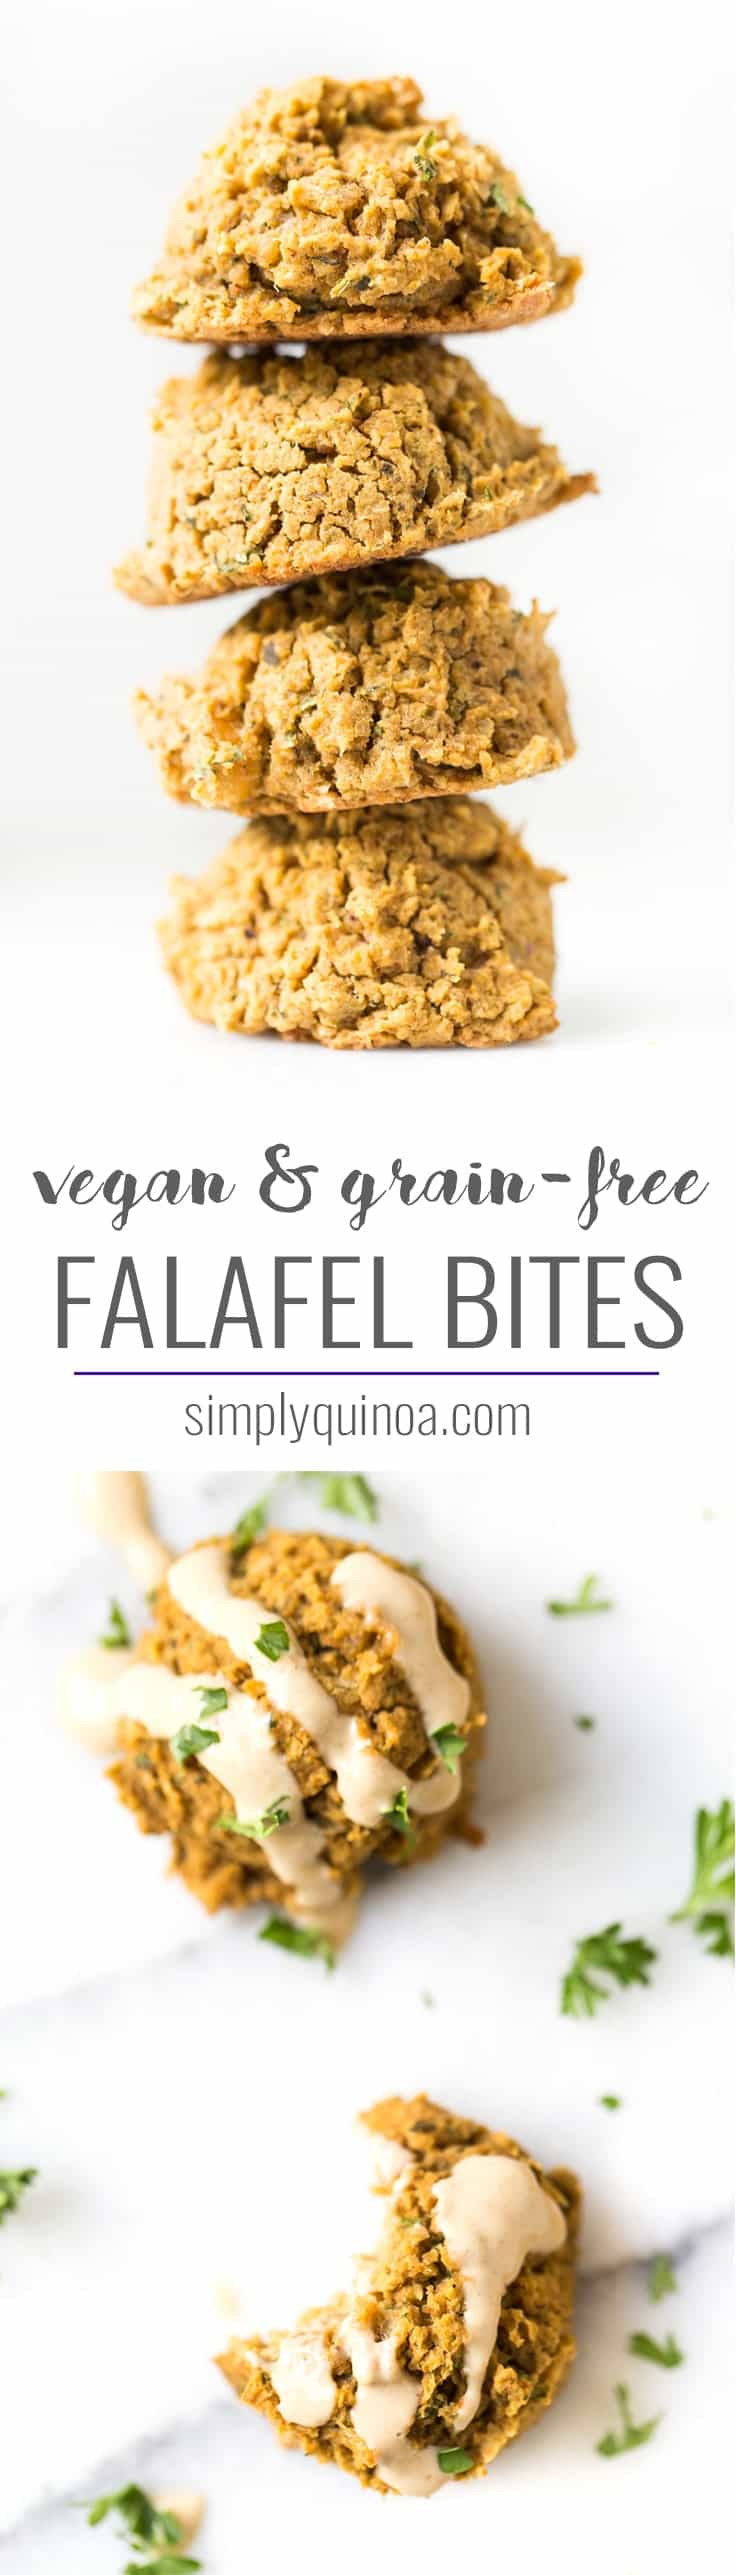 Try these insanely DELICIOUS Grain-Free Falafel Bites! They're perfect on top of salads, as a protein for buddha bowls or served as a healthy appetizer!